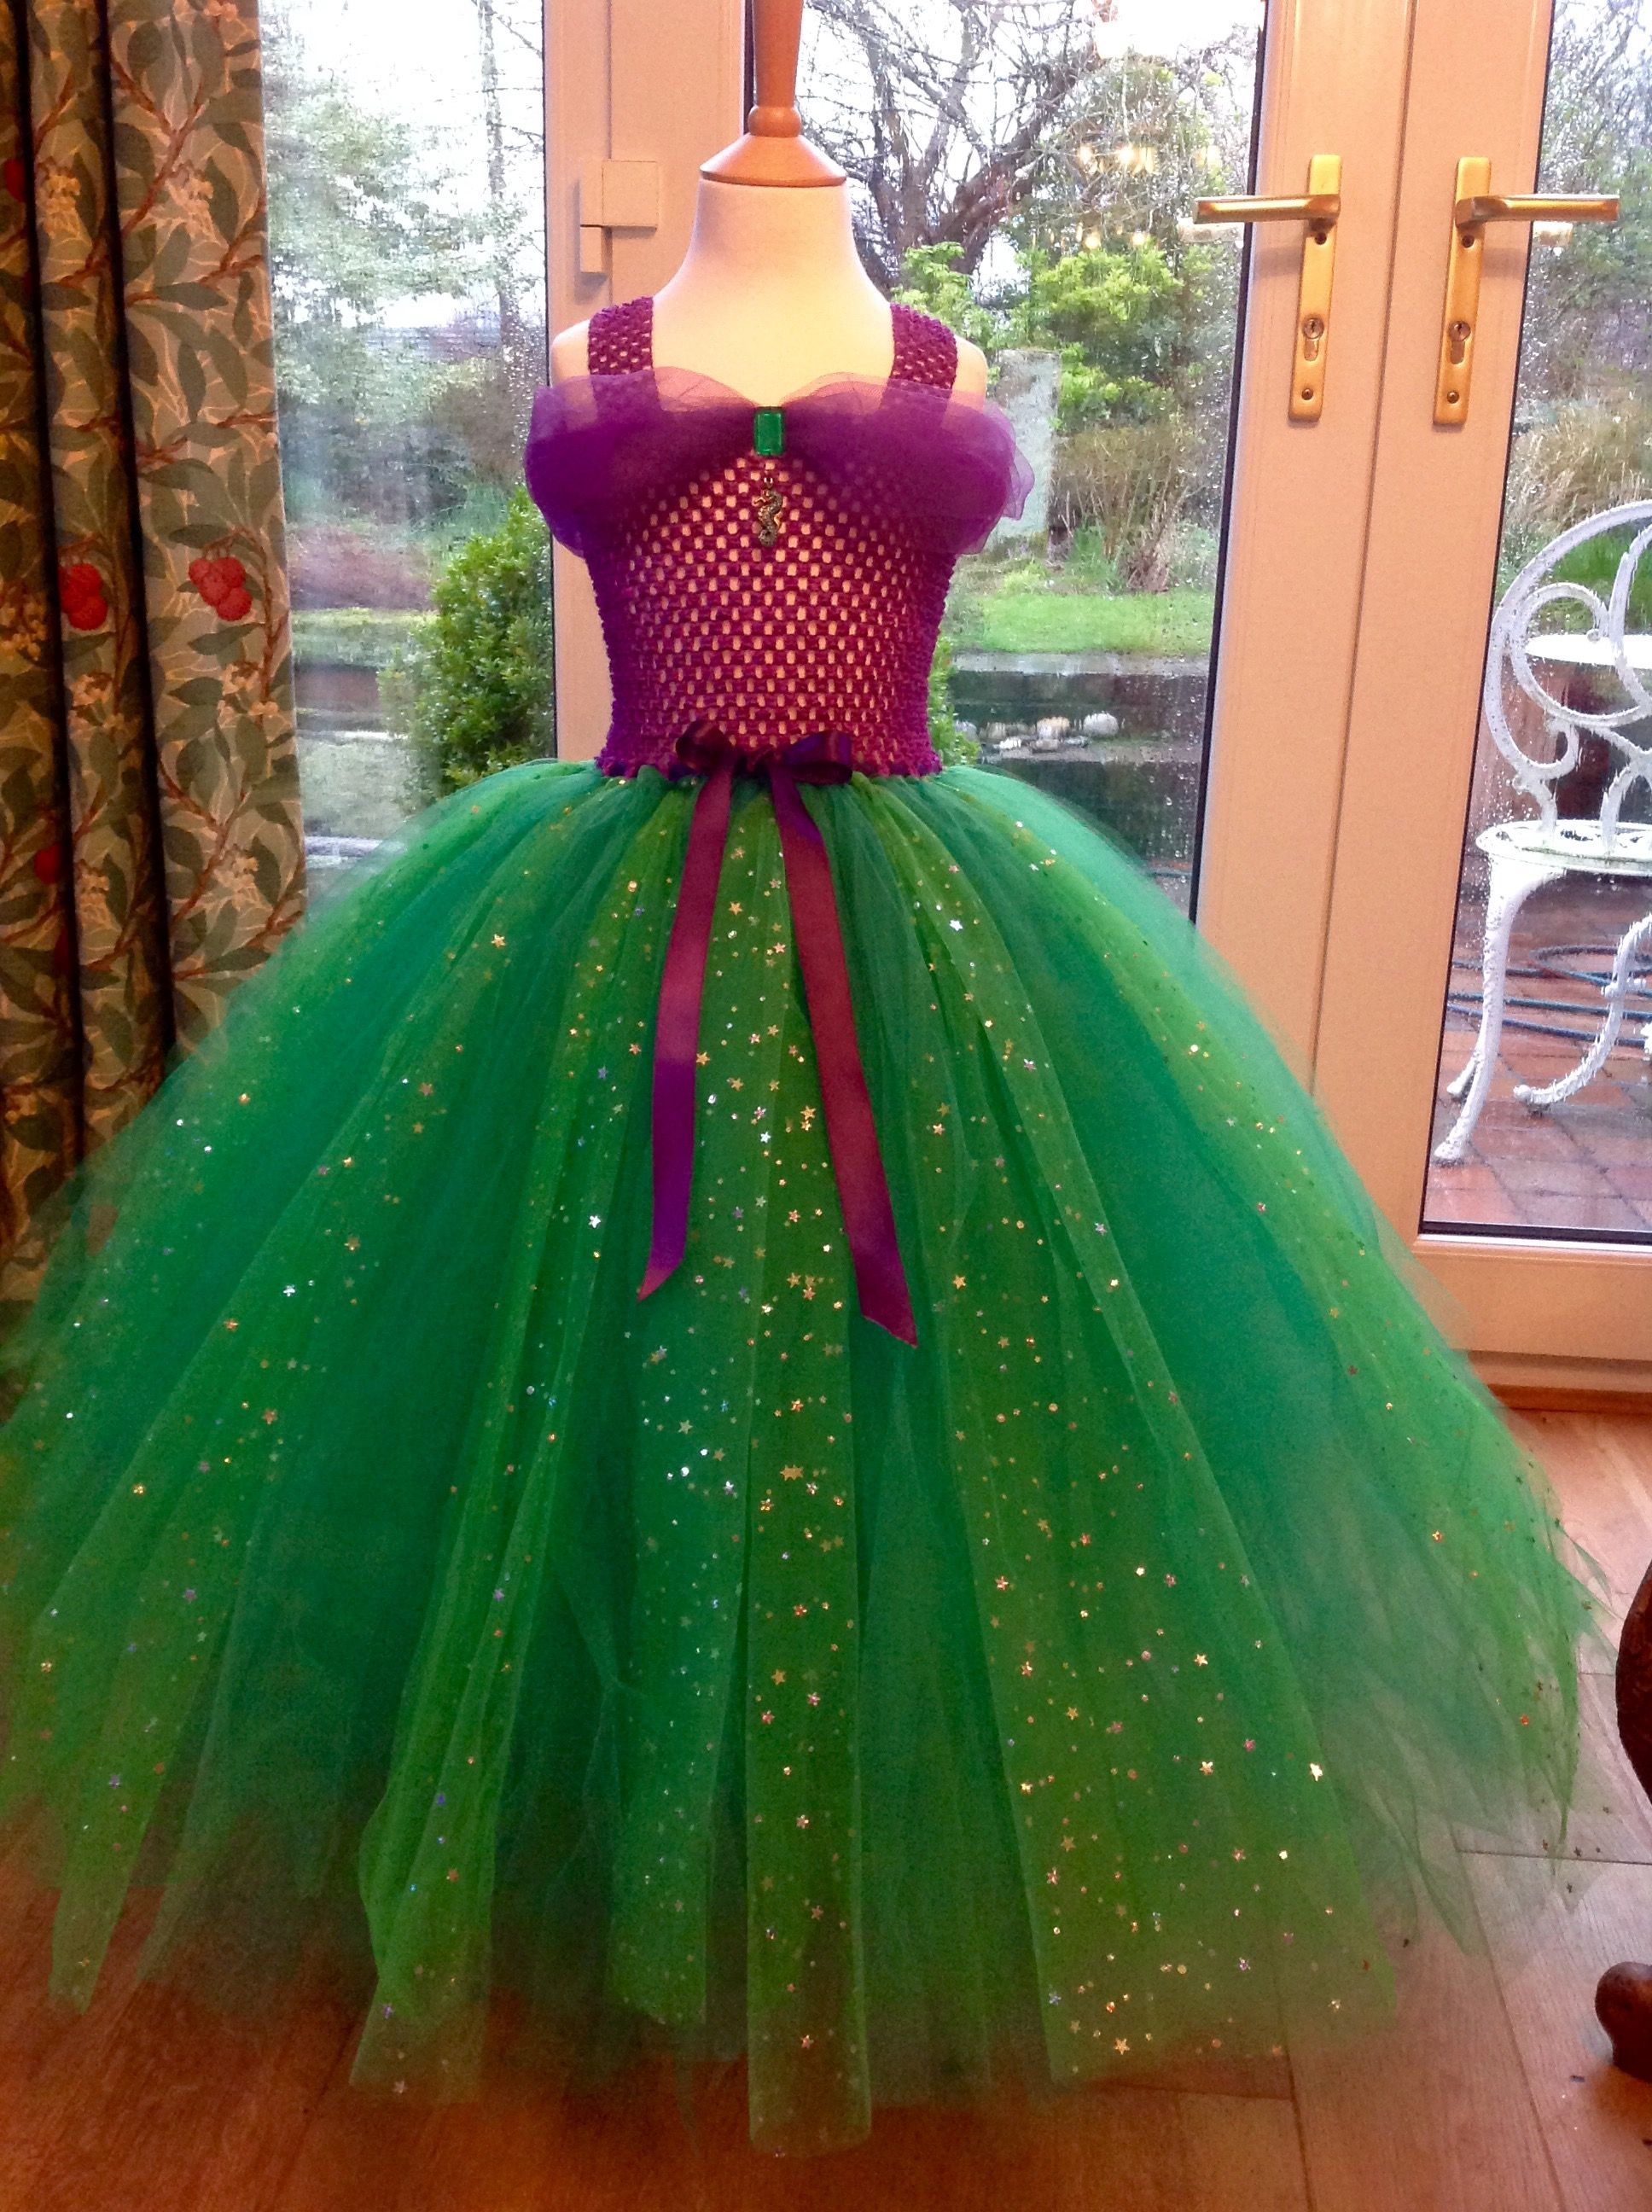 Princess Ariel Inspired Tutu Dress Ready For A Trip To The